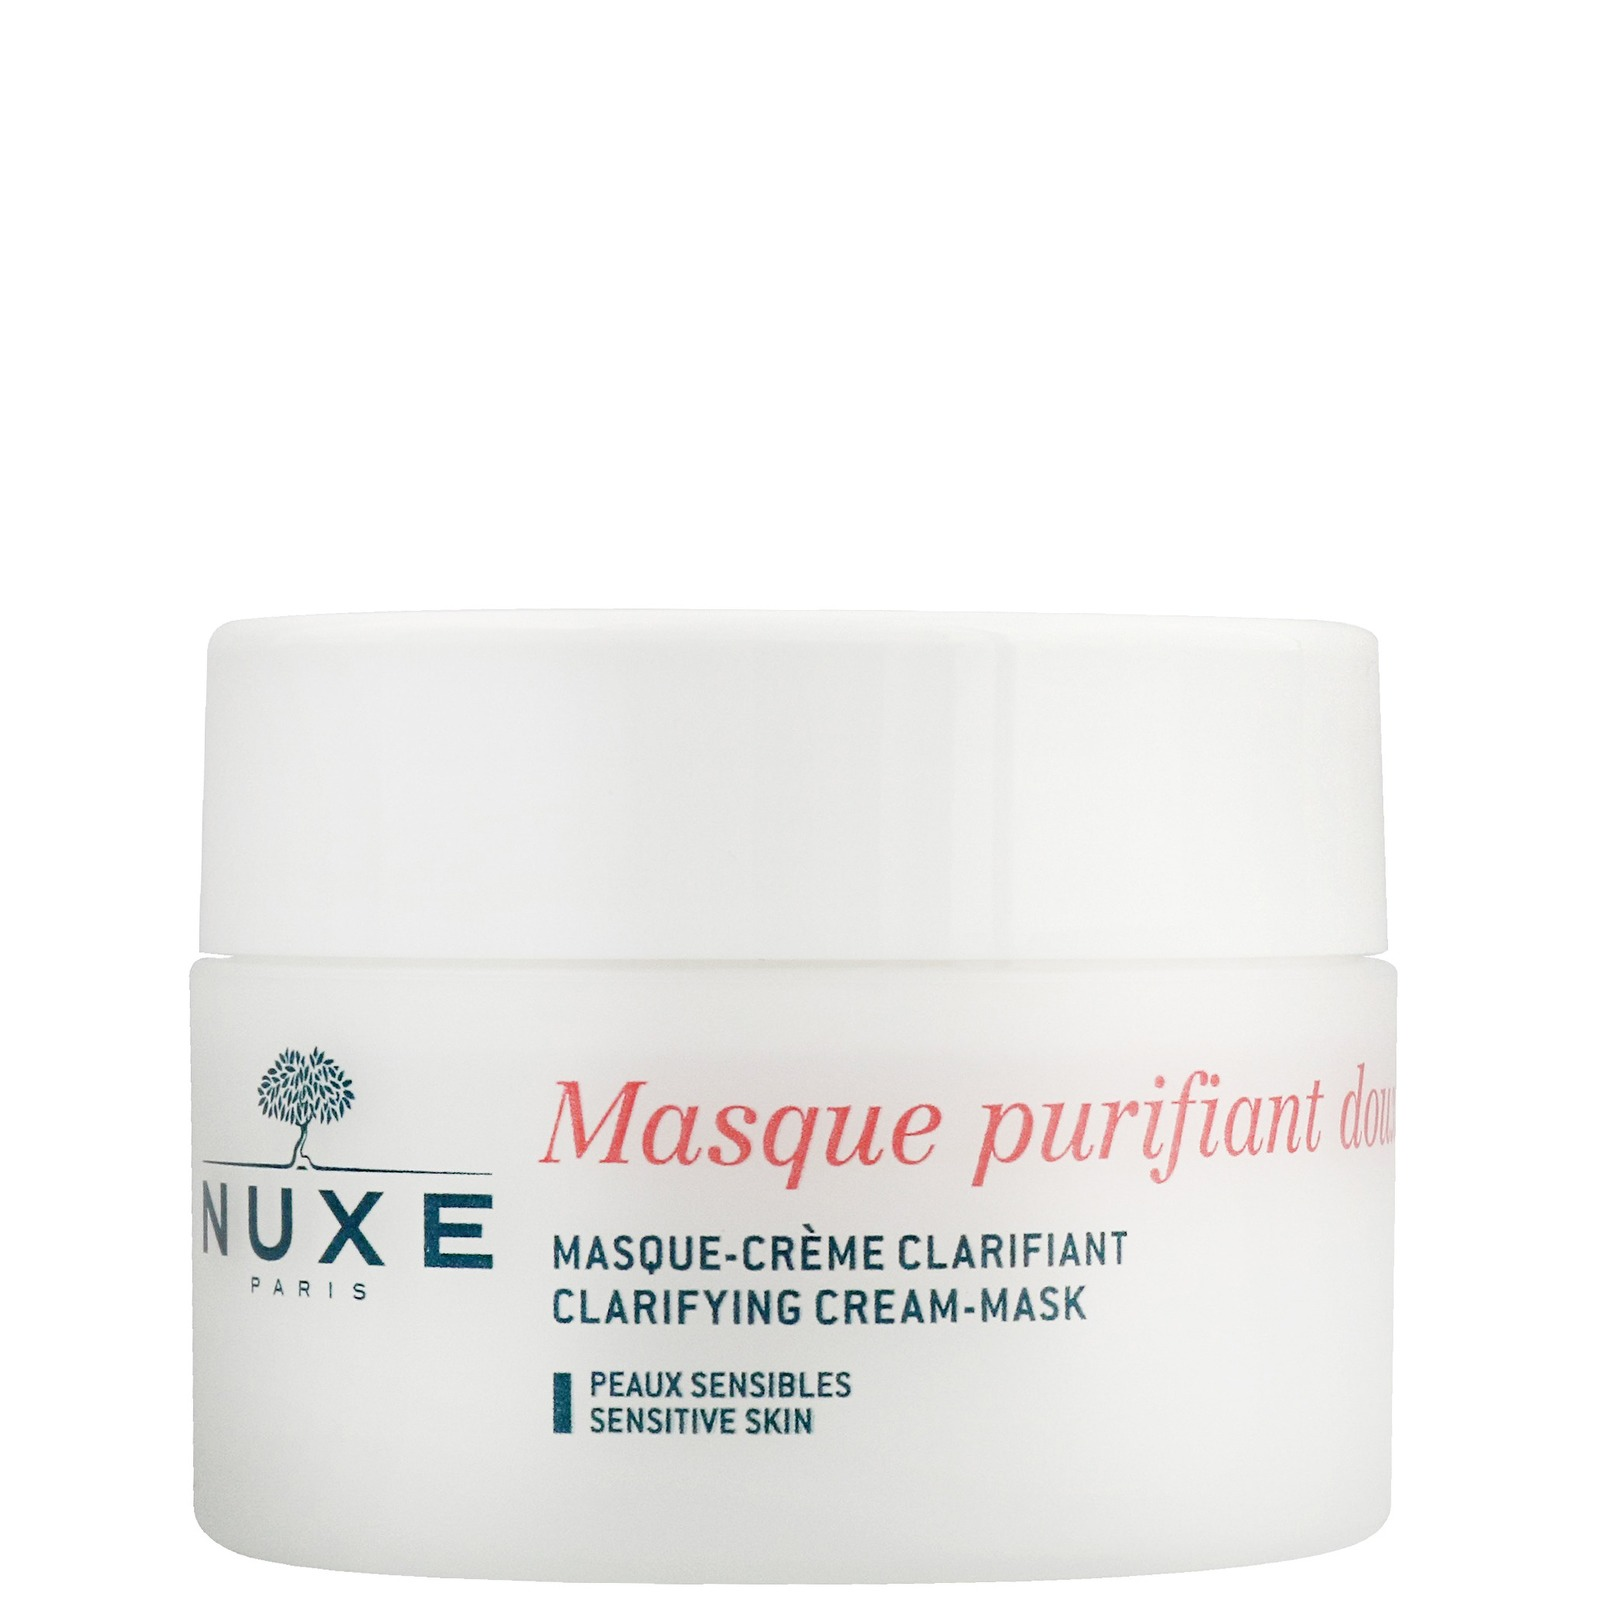 Nuxe Sensitive Skin Clarifying Cream Mask With Rose Petals 50ml